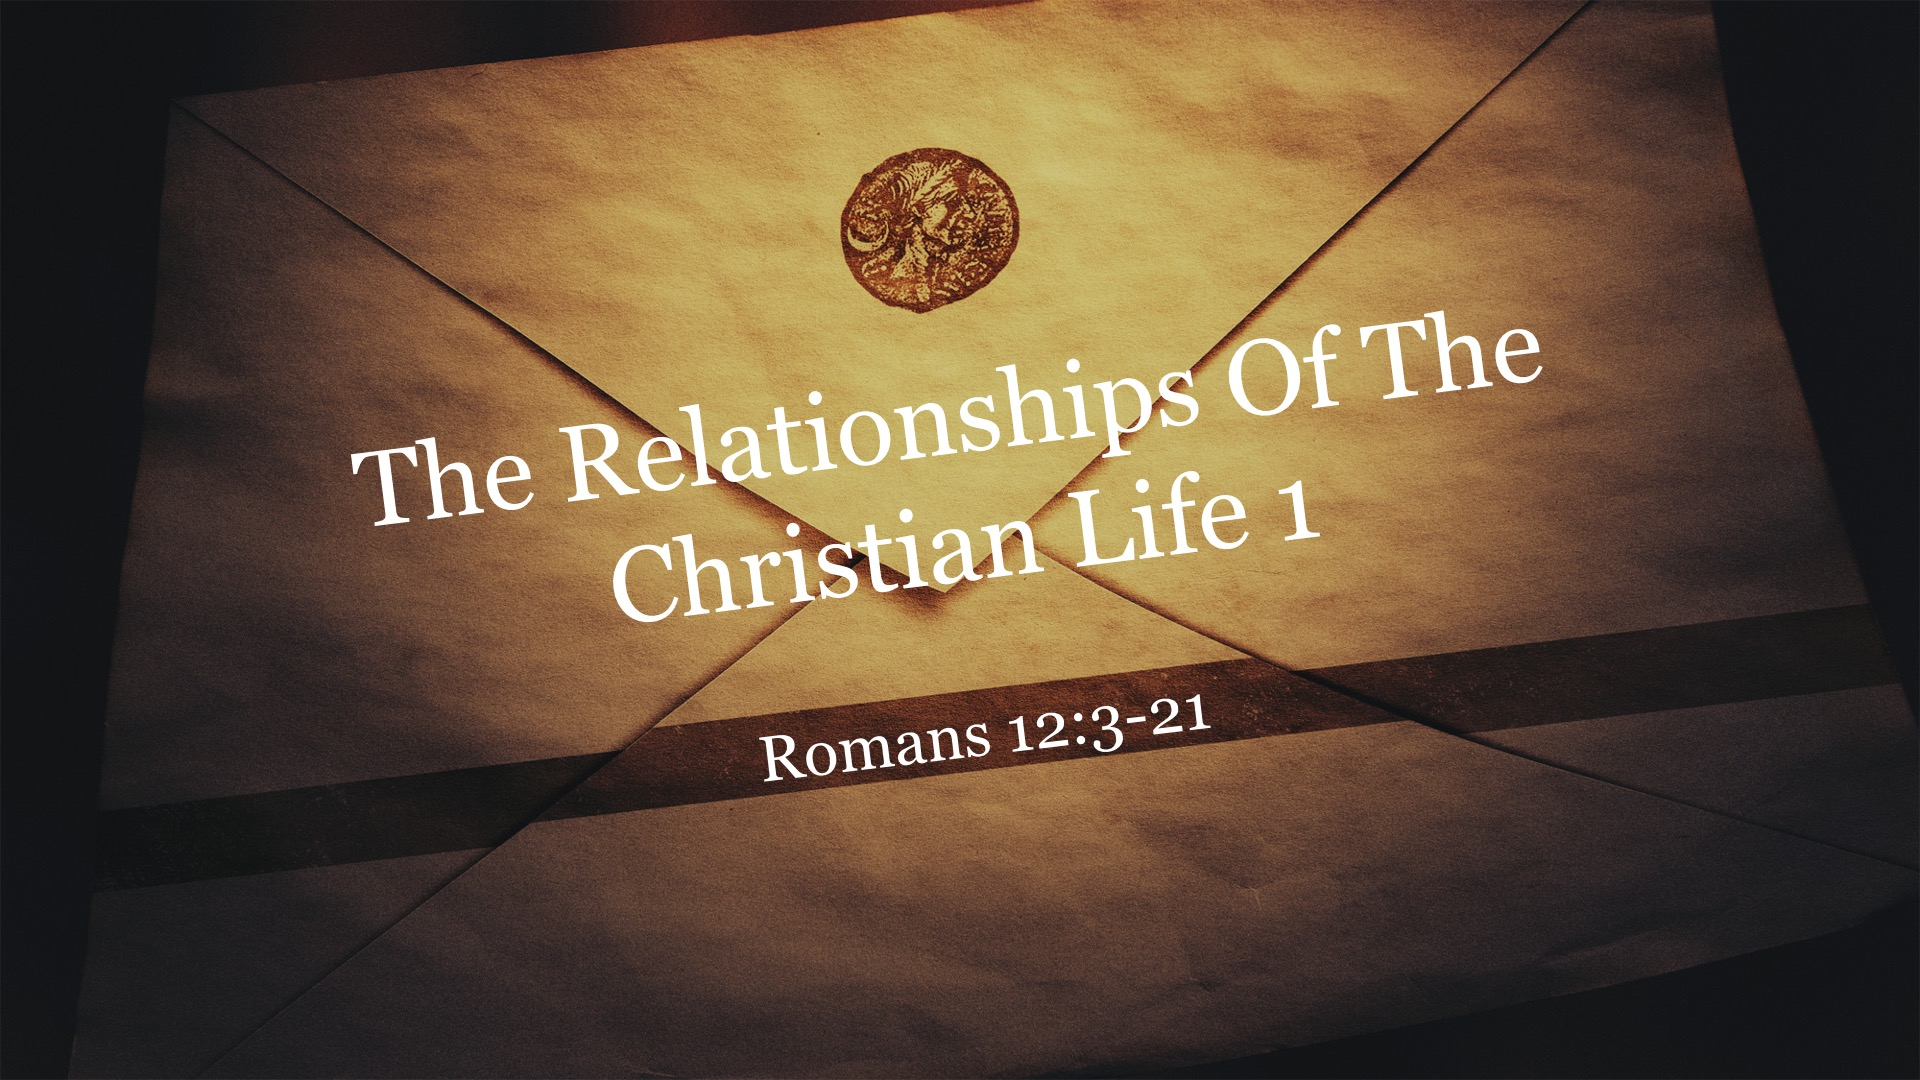 The Relationships of the Christian Life Part I